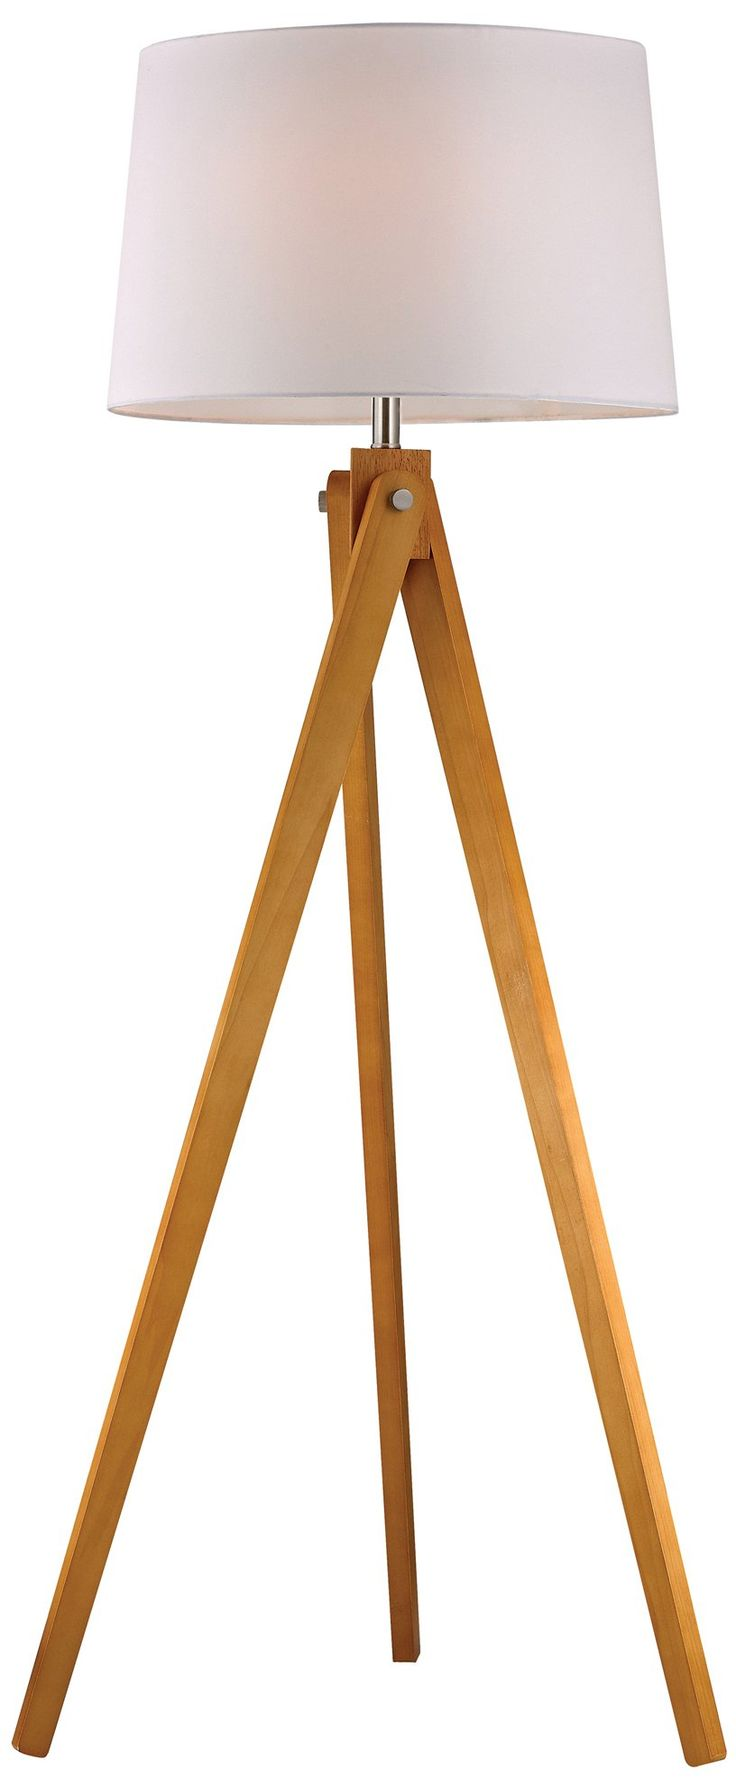 Tripod lamp target - Amazon Com Dimond Lighting D2469 Led Wooden Tripod Floor Lamp Natural Wood